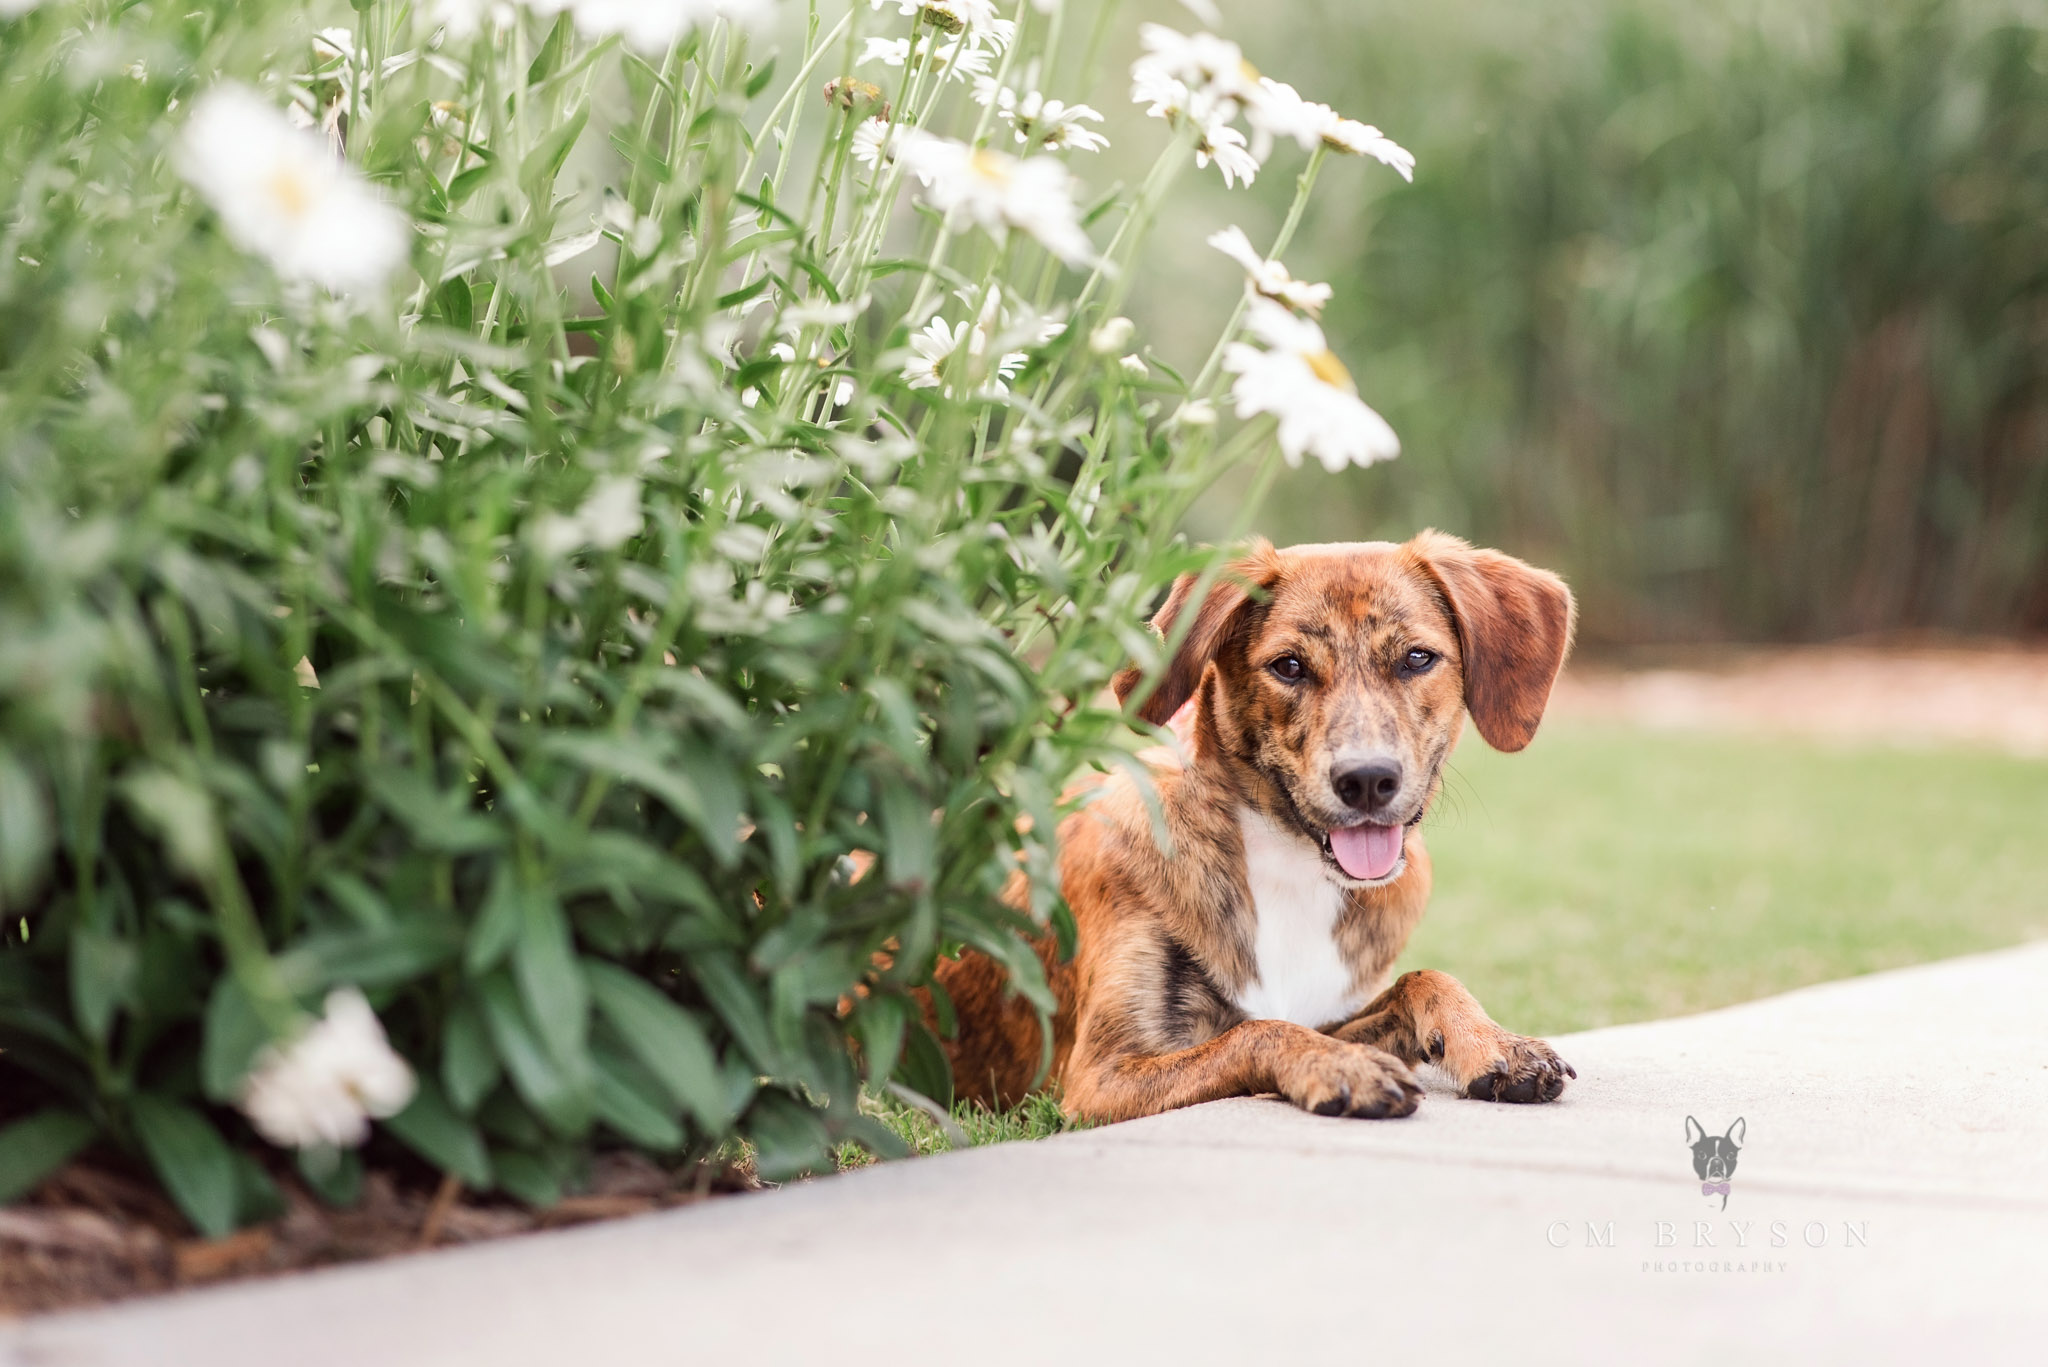 Finding natural locations is possible even when the focus of your pet's photo shoot is an urban adventure.